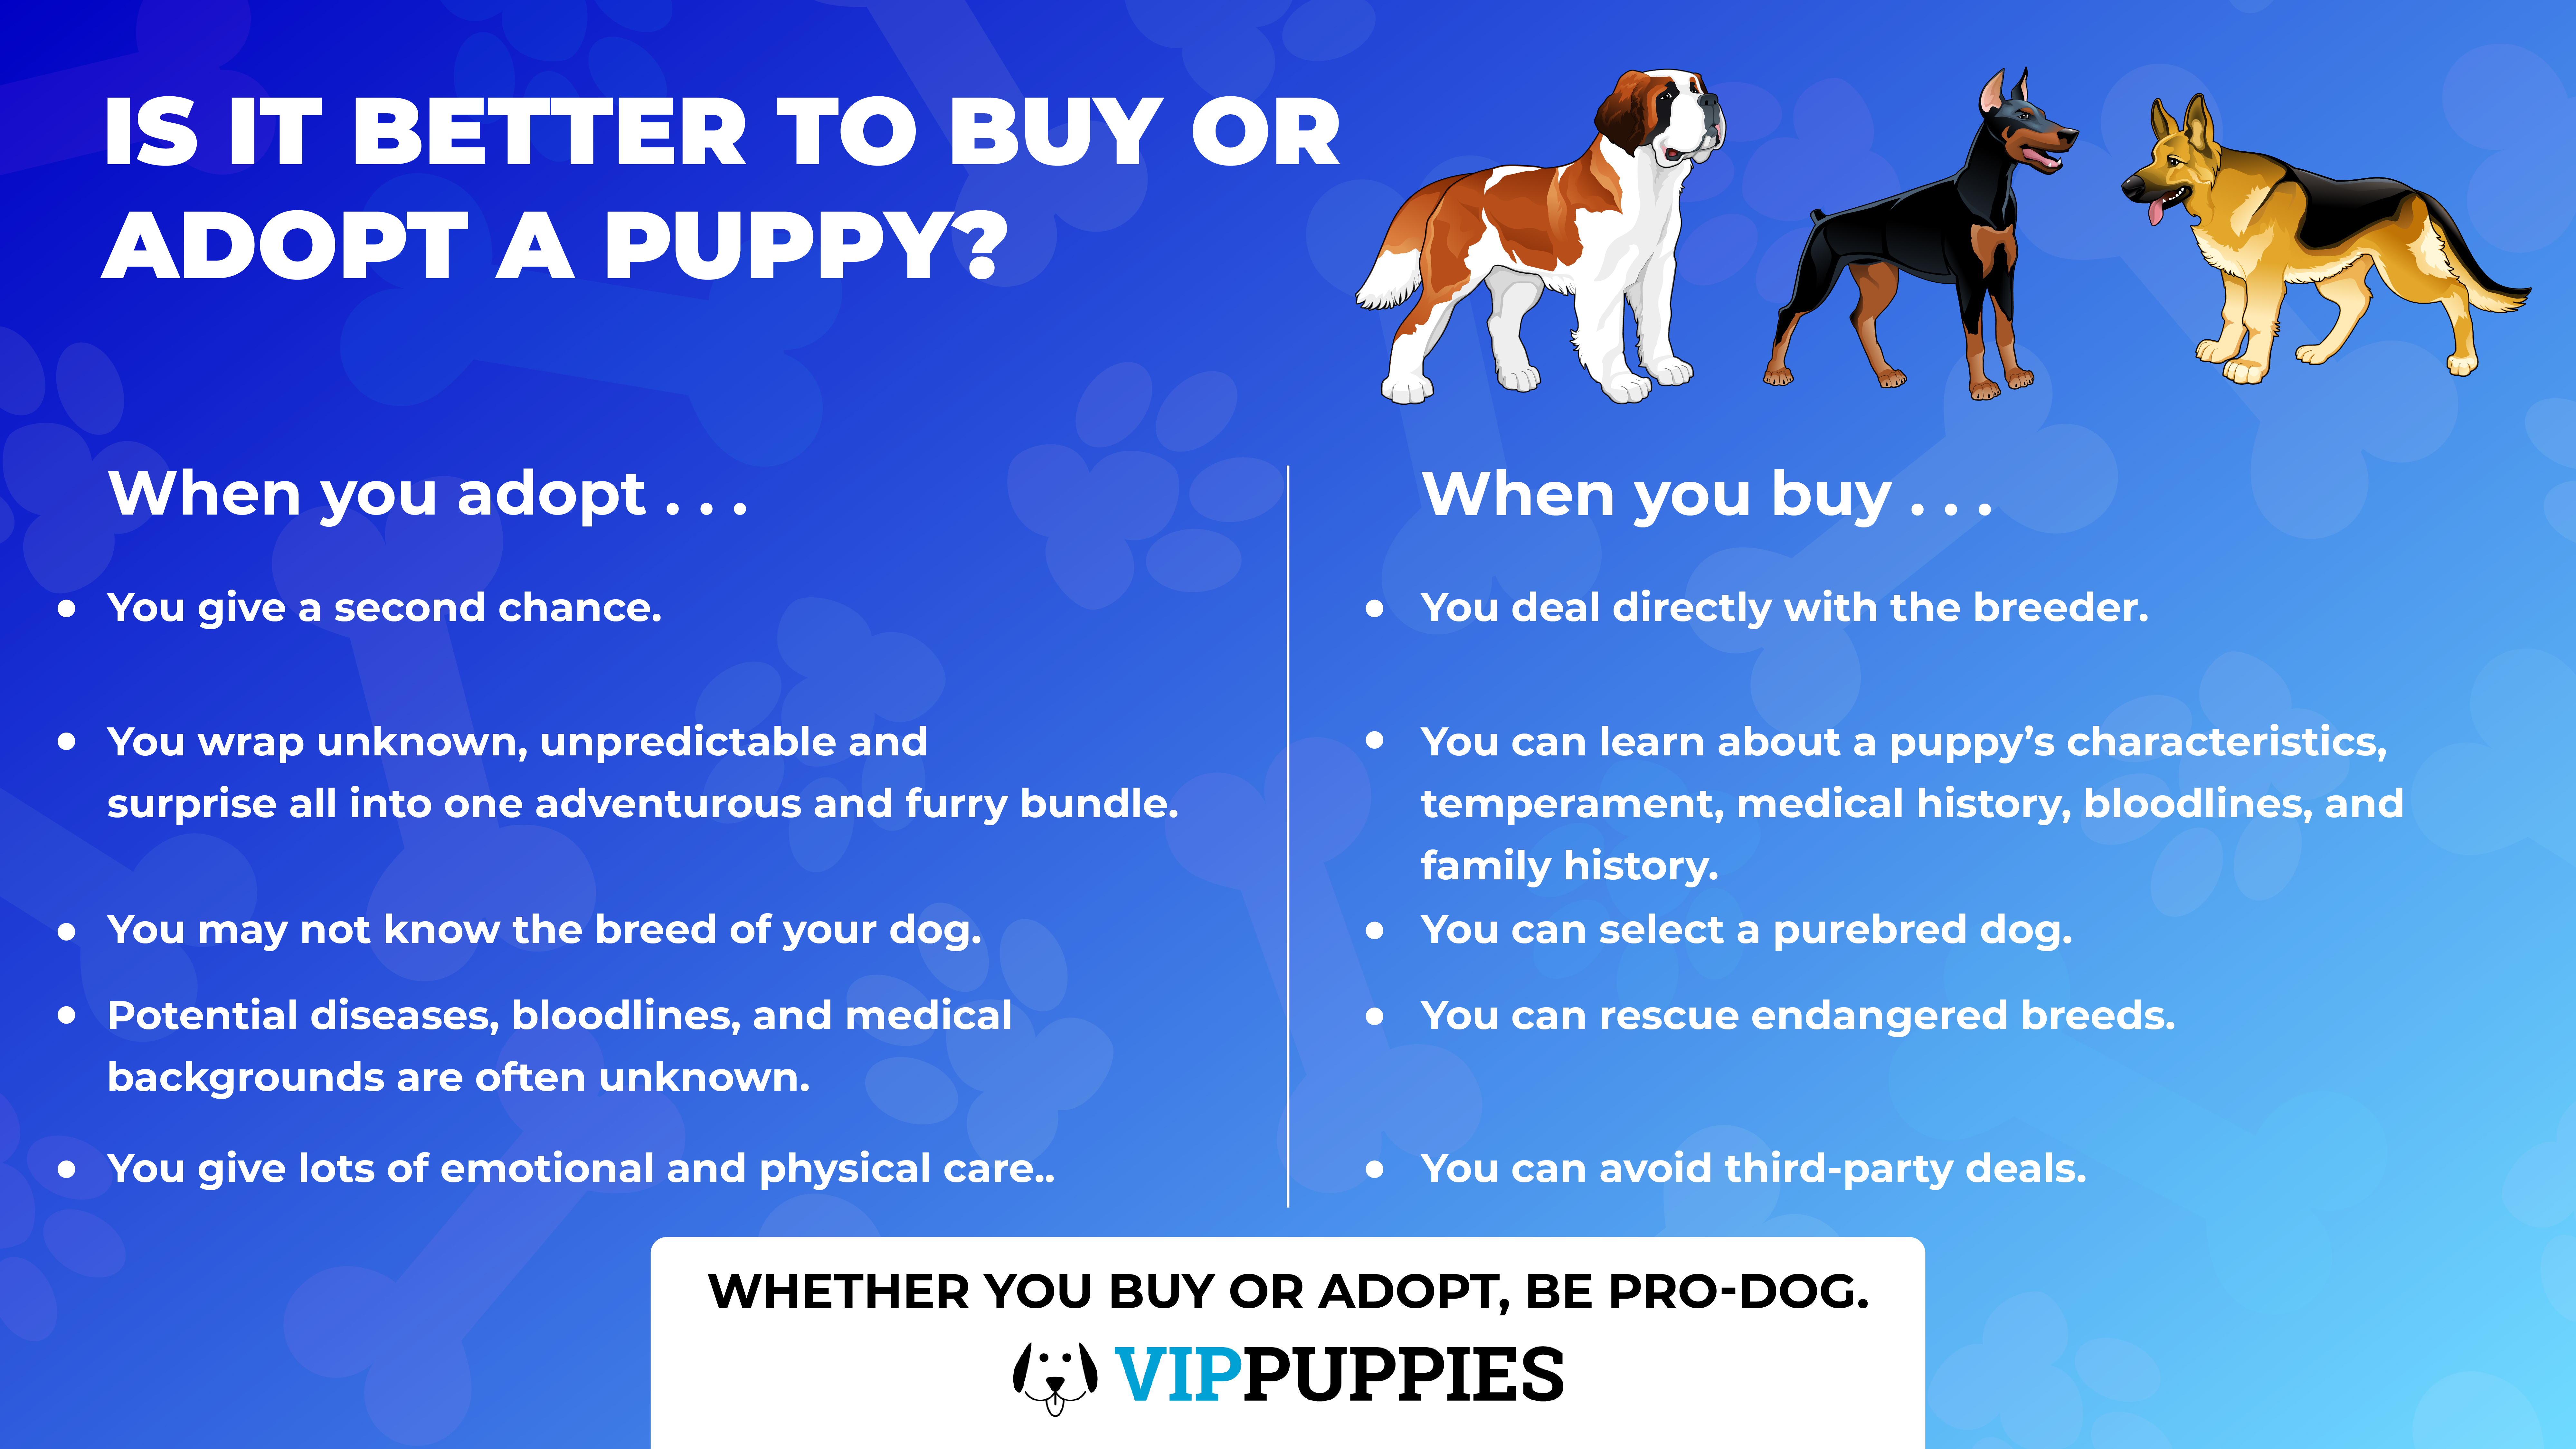 Is it better to buy or adopt a puppy?